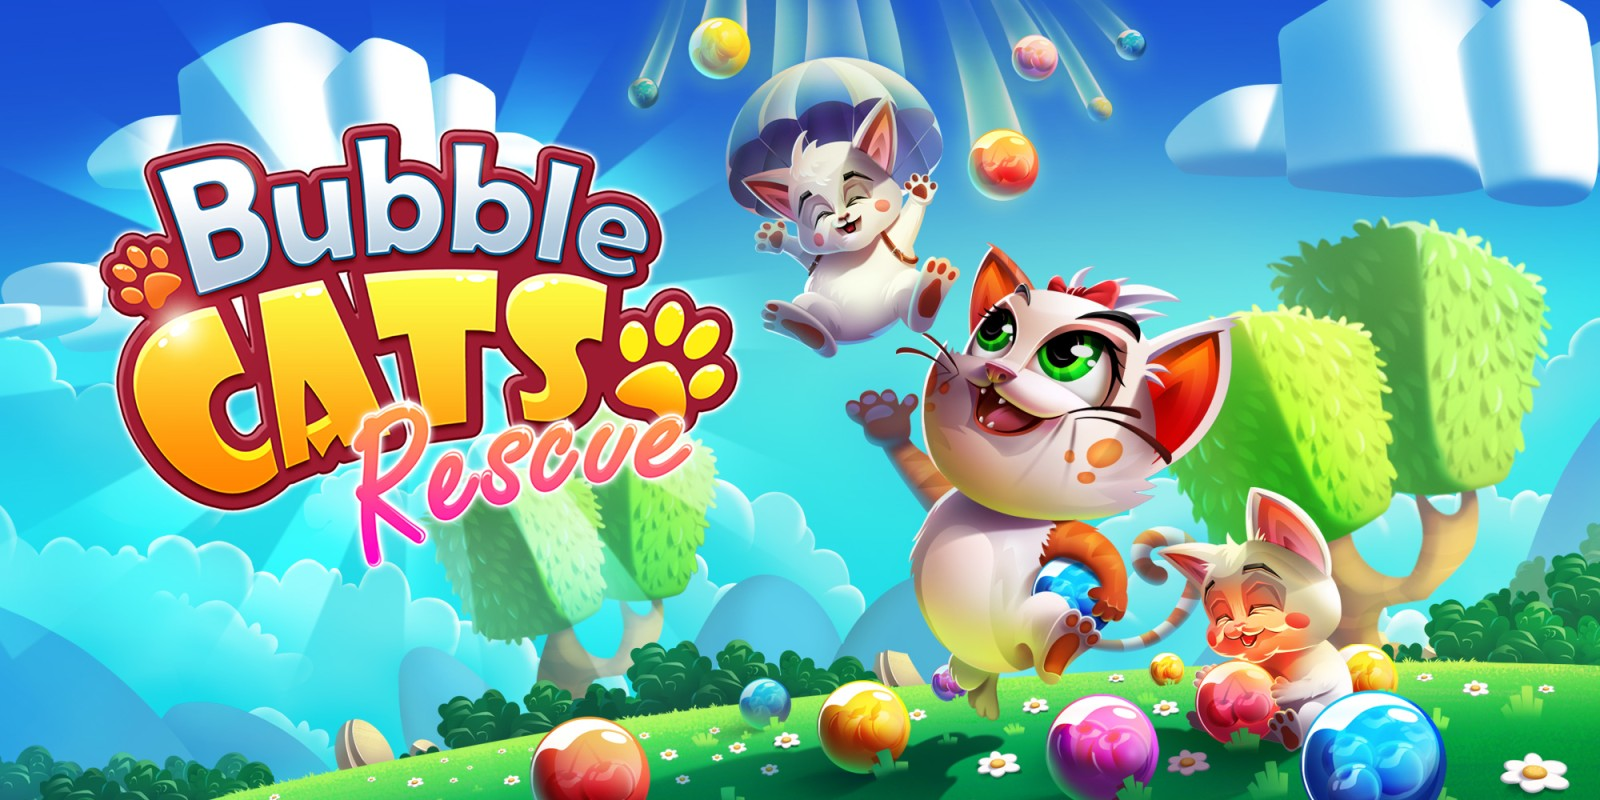 Bubble Cats Rescue